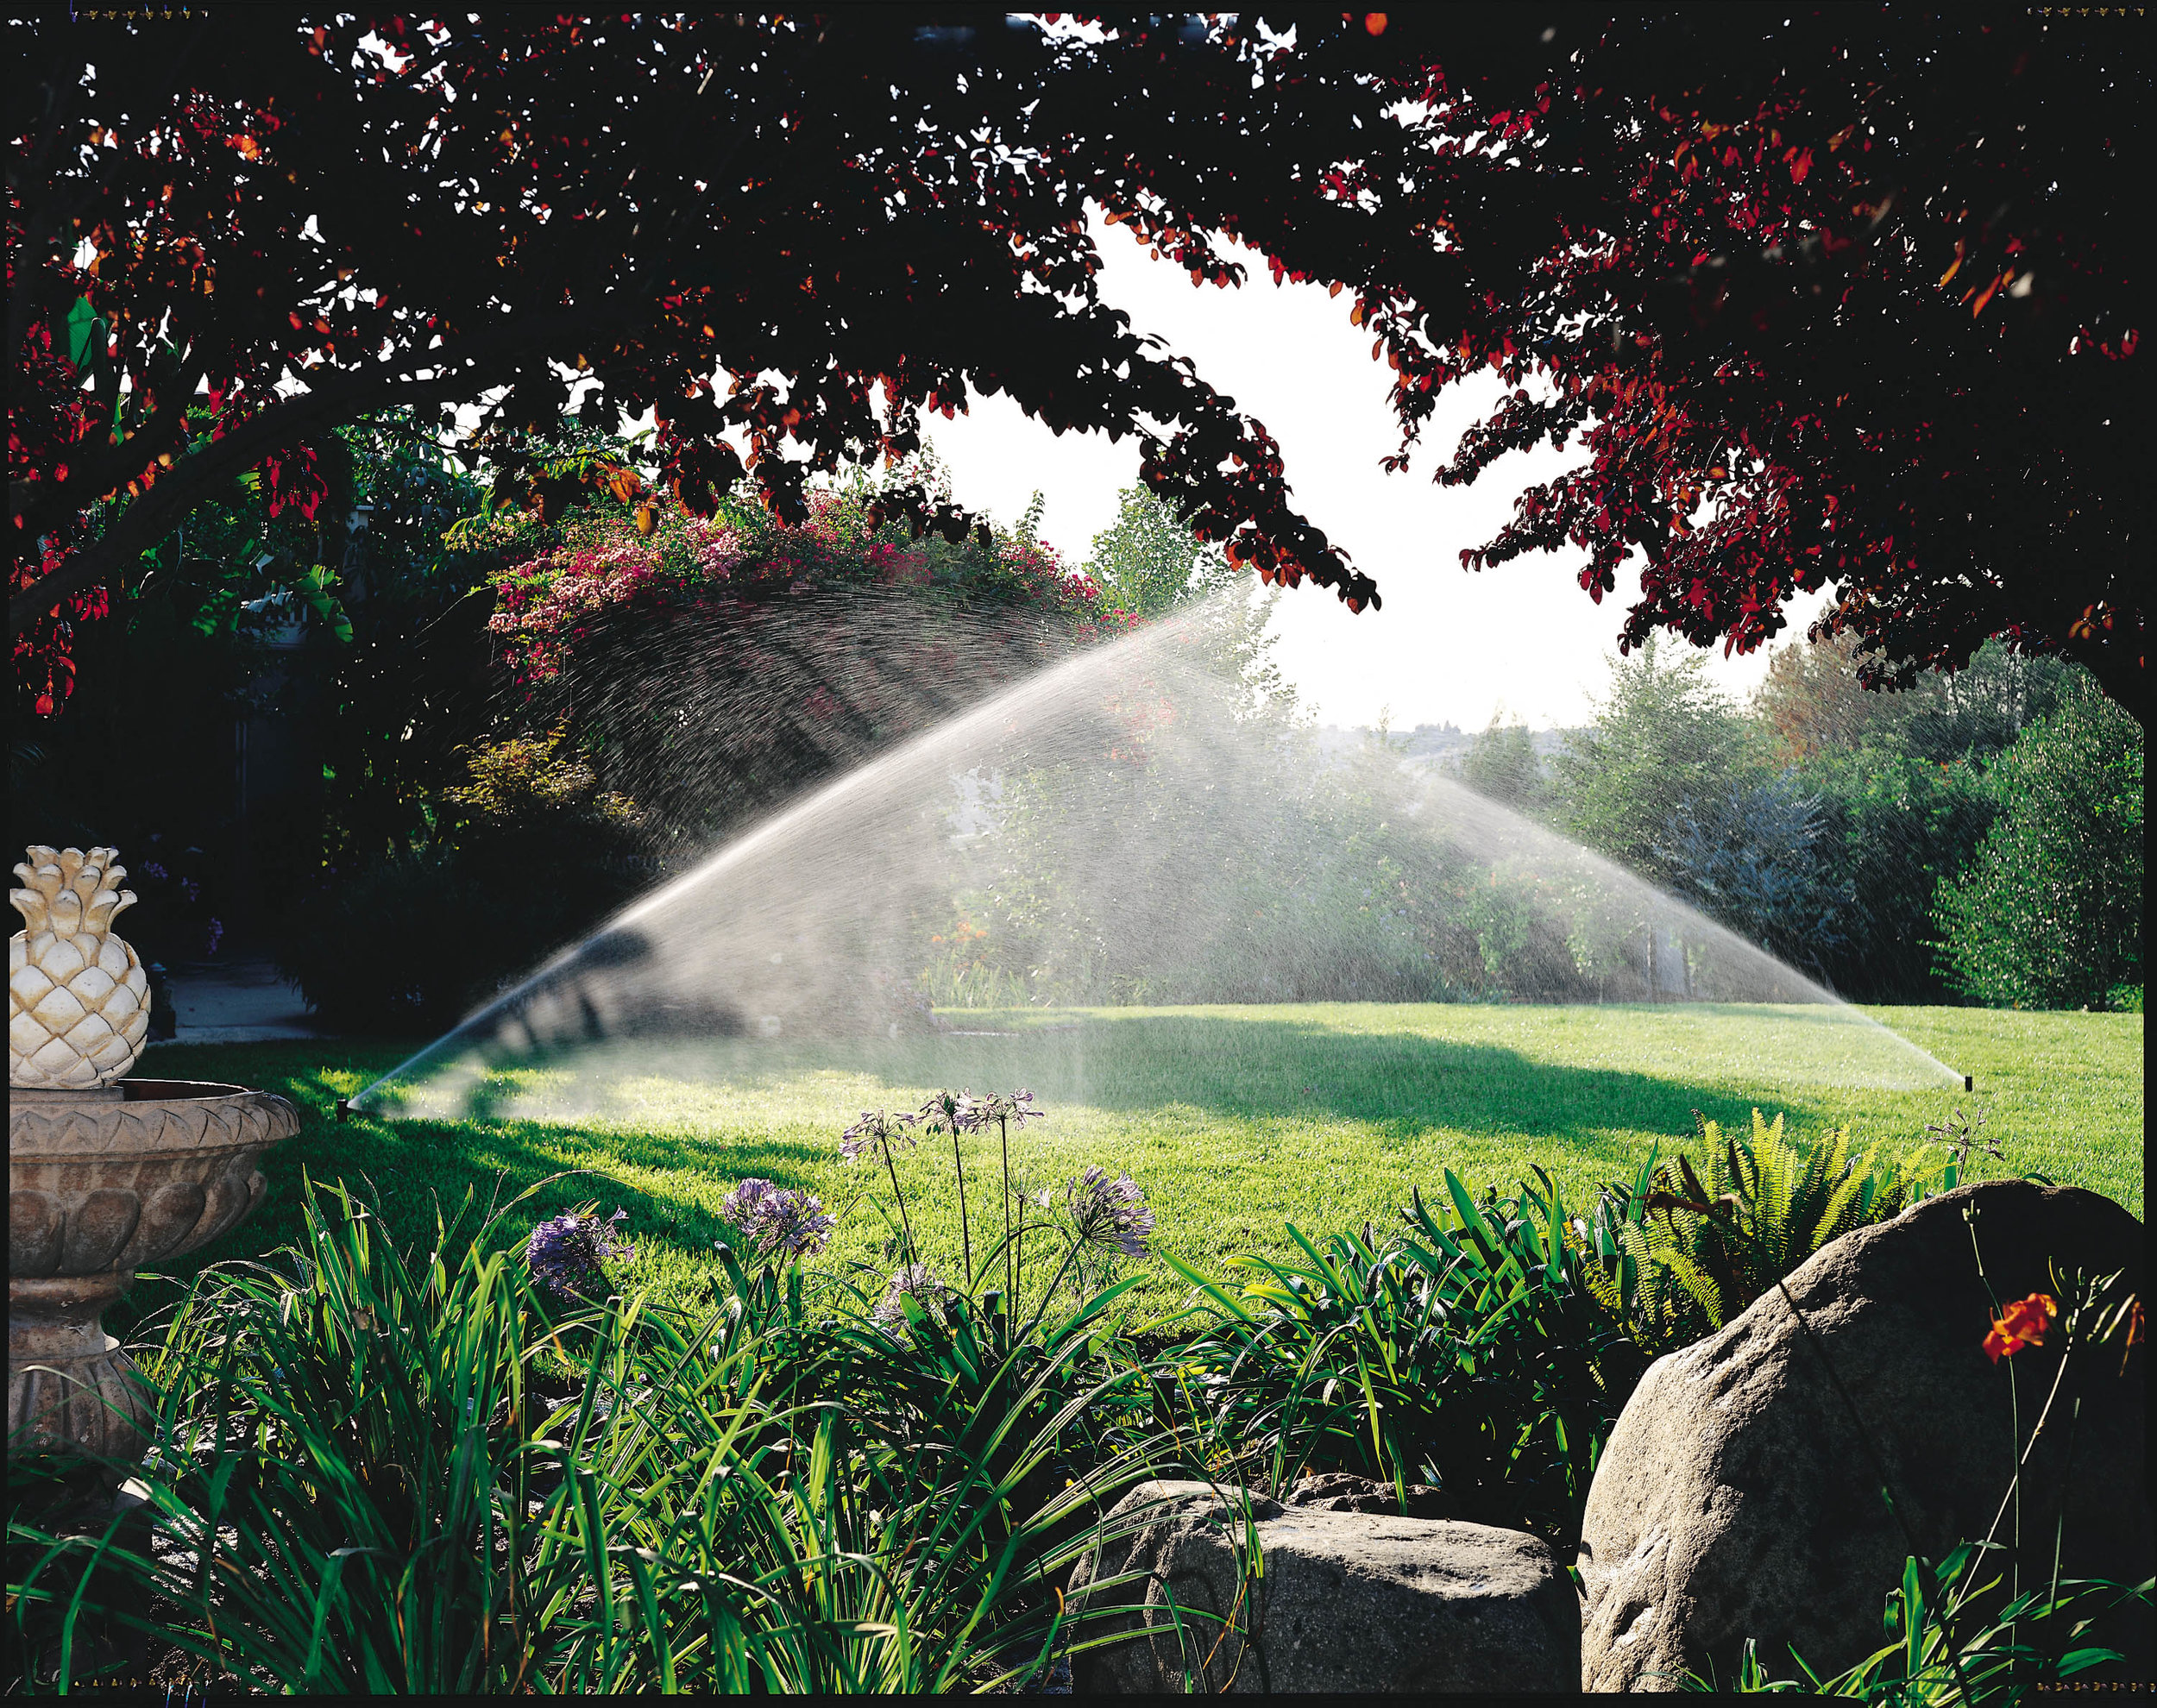 Sprinkler Repair and Installation - Servicing and repairing all brands of sprinkler systems and installing industry leading RainBird products, all backed by an unbeatable warranty.